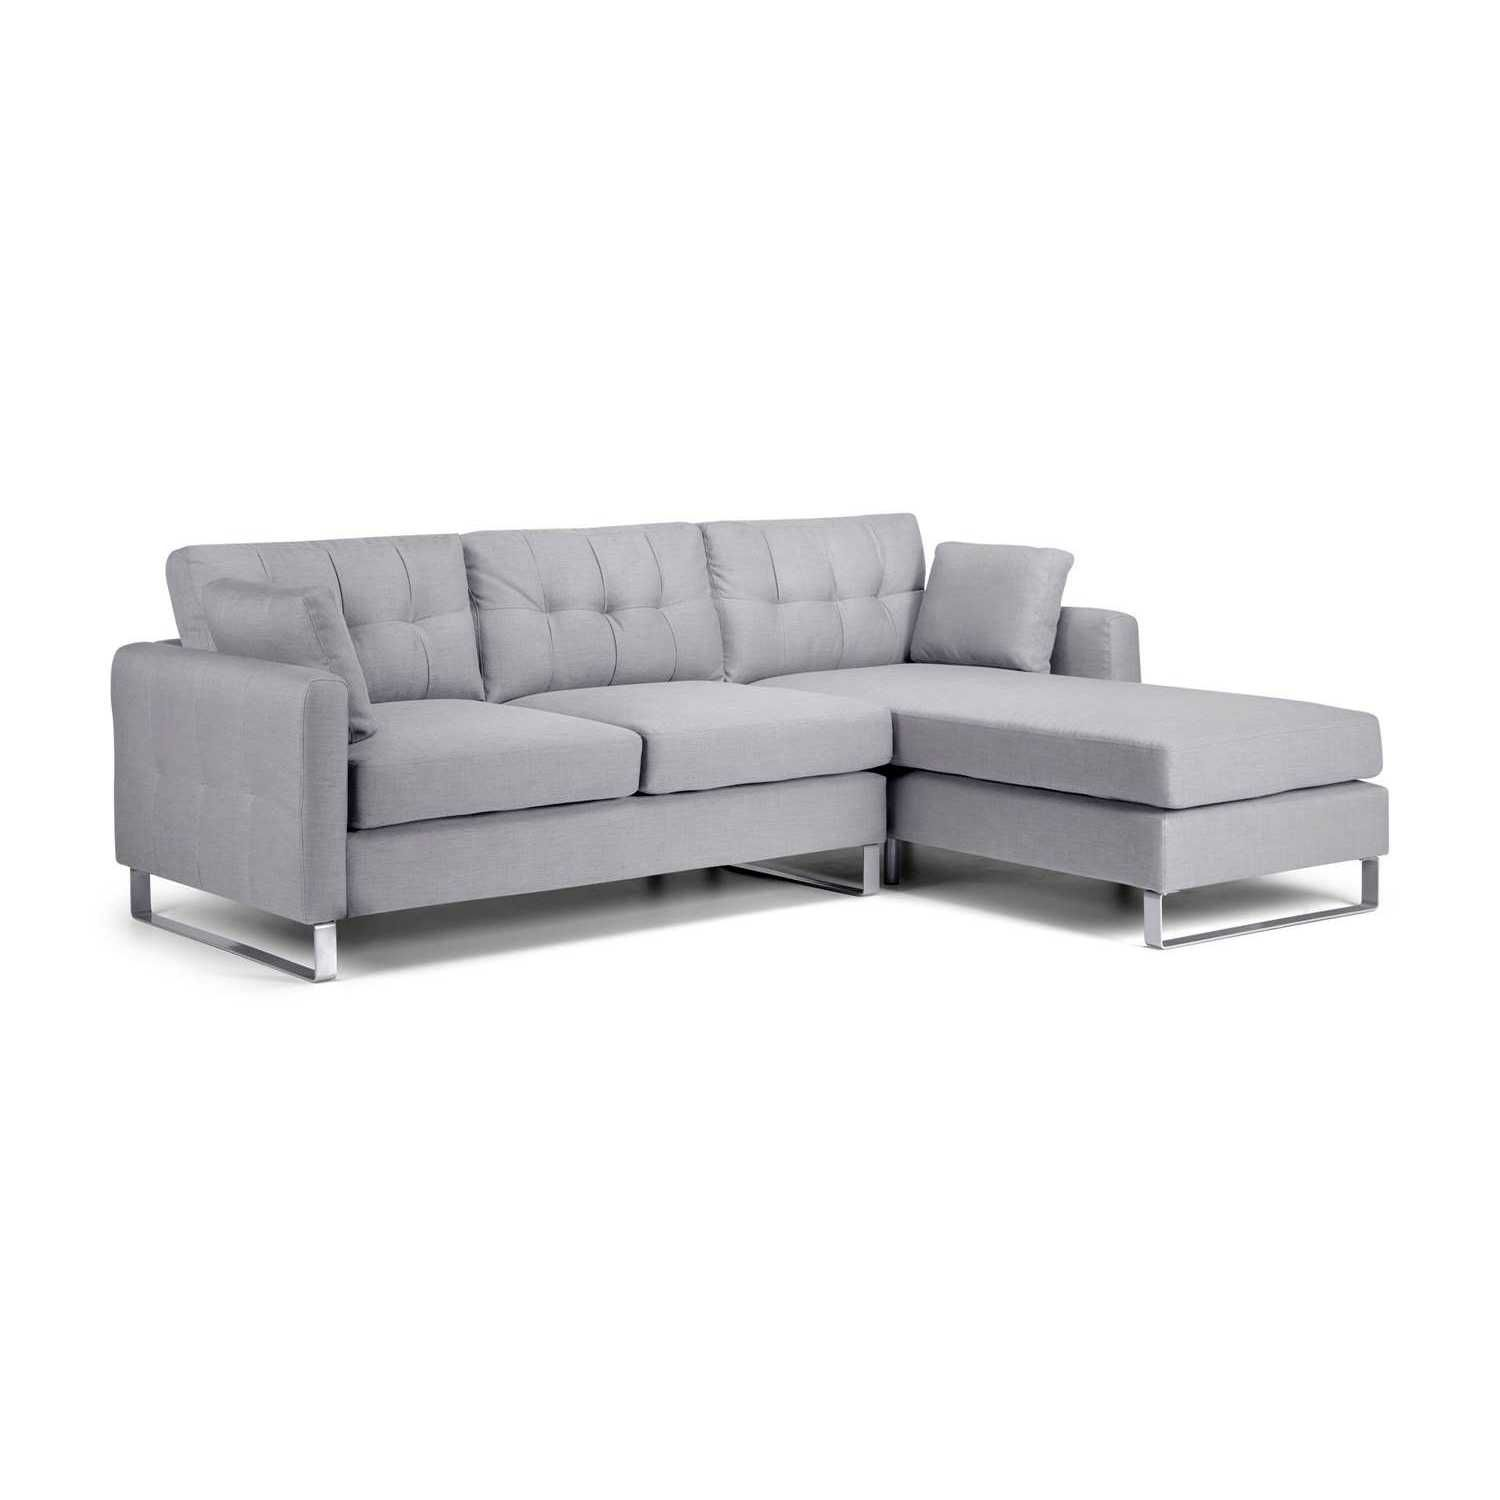 Awesome Hera Grey Fabric Corner Sofa The Range Home Decor Grey Machost Co Dining Chair Design Ideas Machostcouk